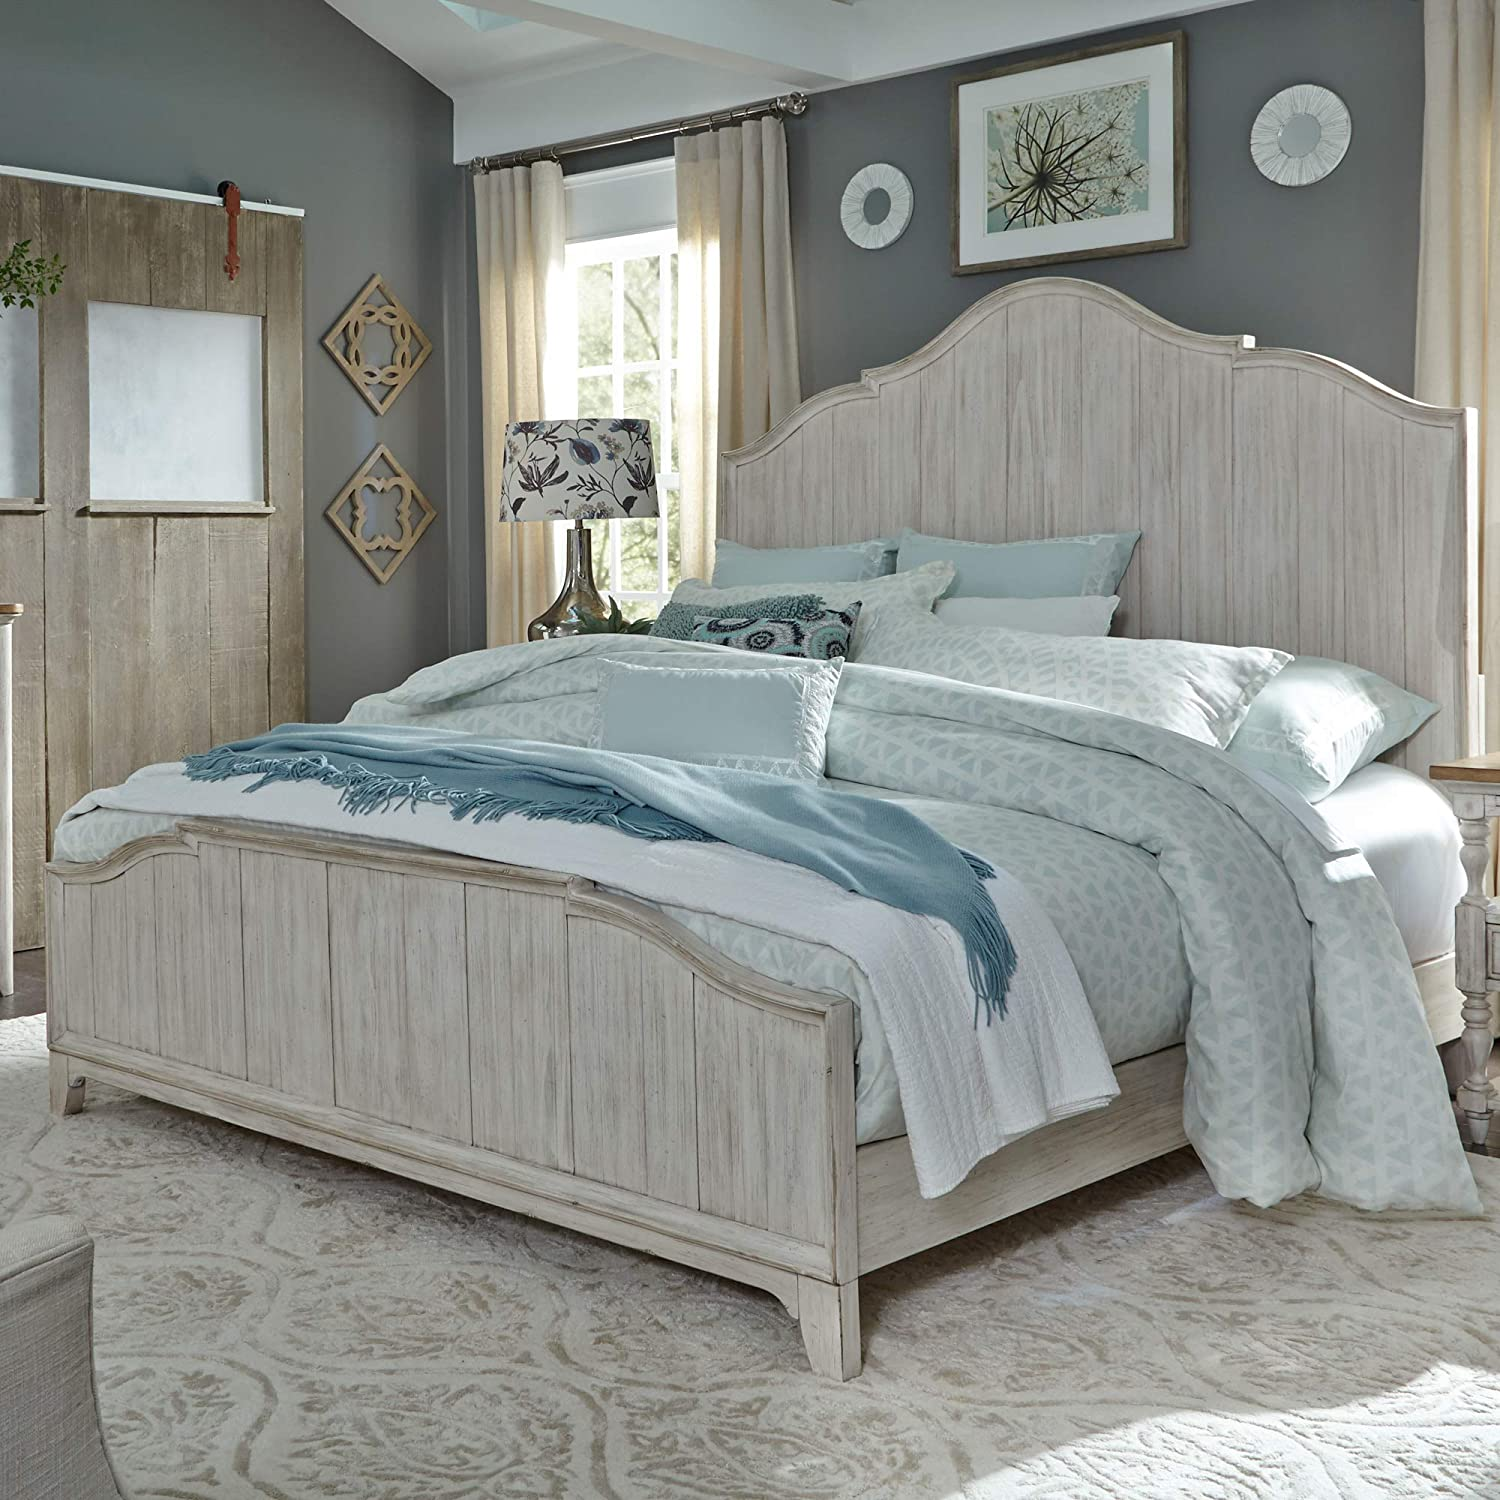 Liberty Furniture Industries Farmhouse Reimagined King Panel Bed, White